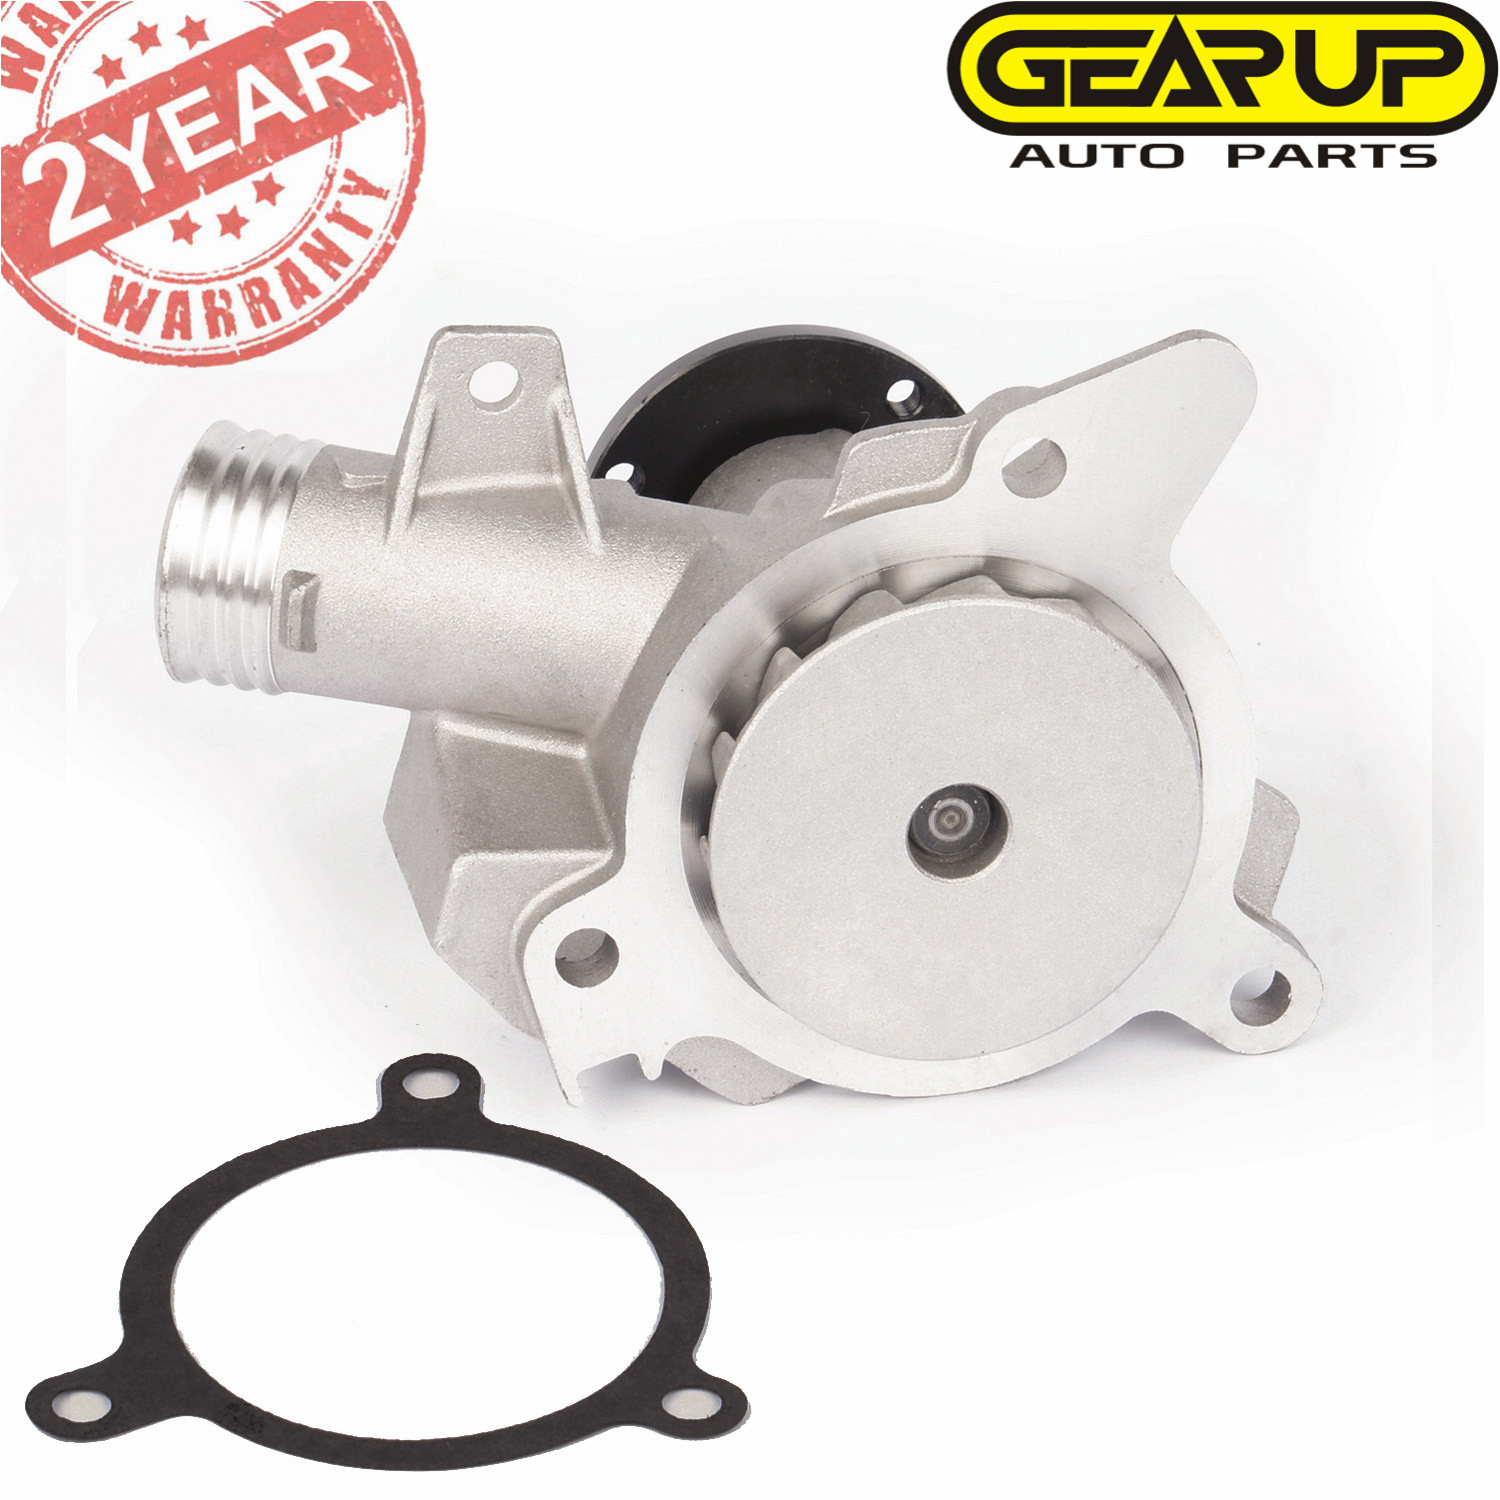 Engine Water Pump For 1988-1993 BMW 325i 325iX 325iS 525i ...